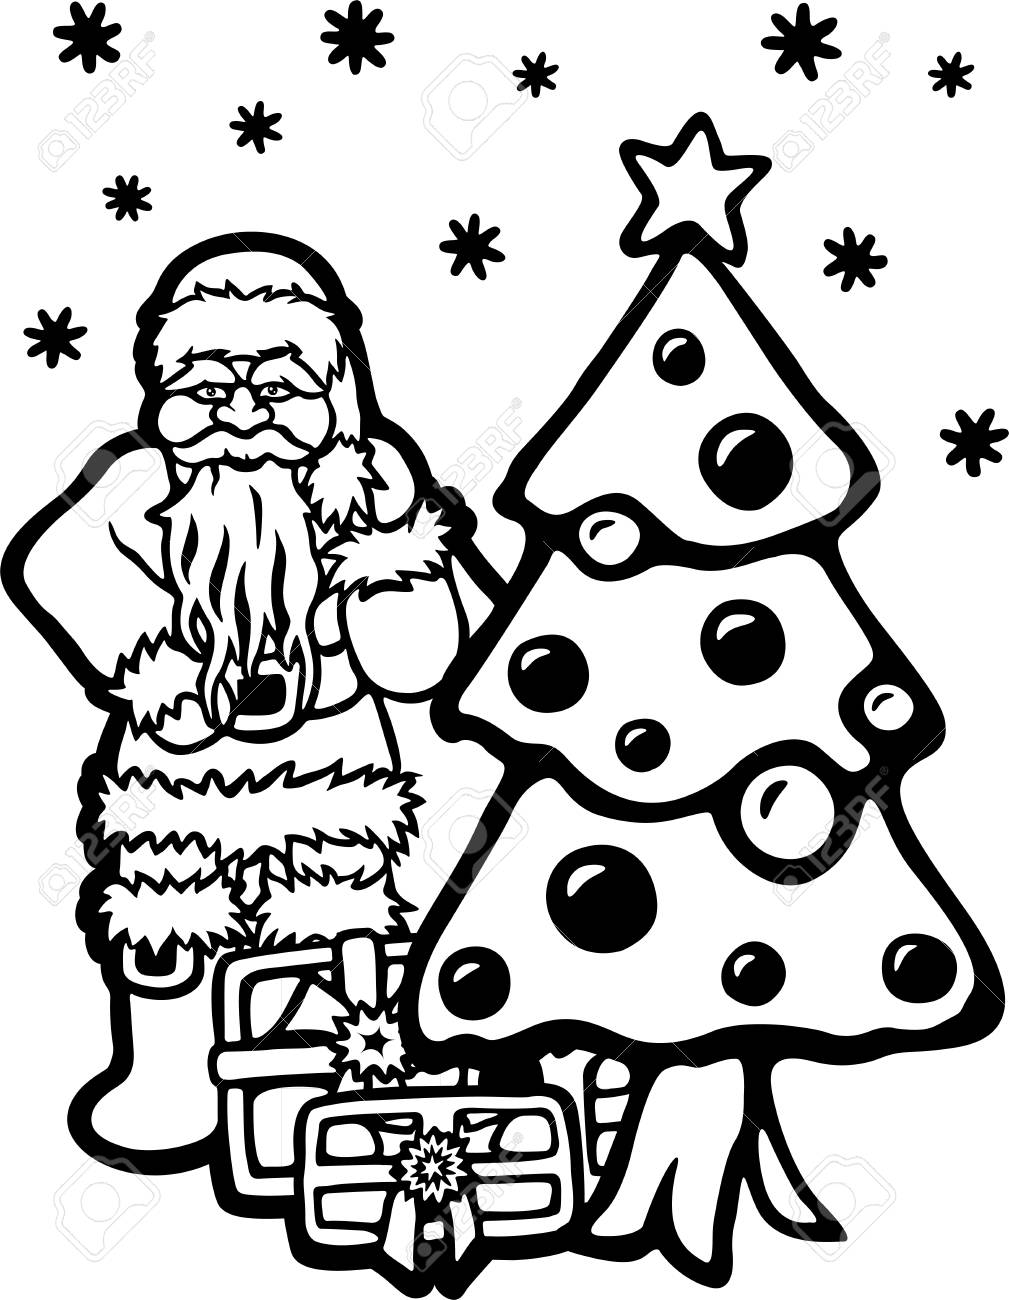 Coloring Book Page With Cartoon Santa Christmas Tree And Gifts